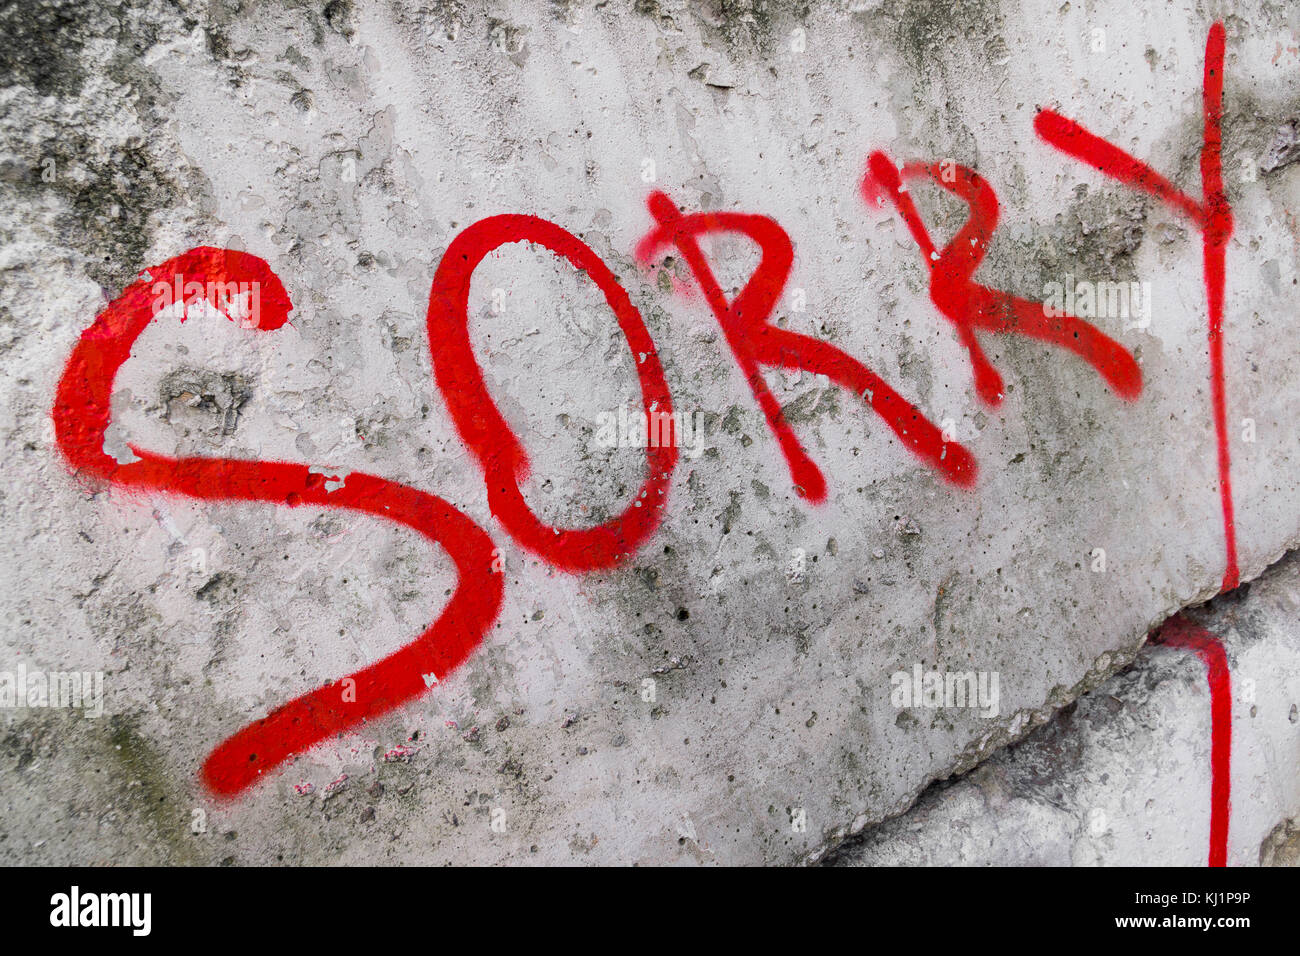 Sorry inscription painted - Stock Image